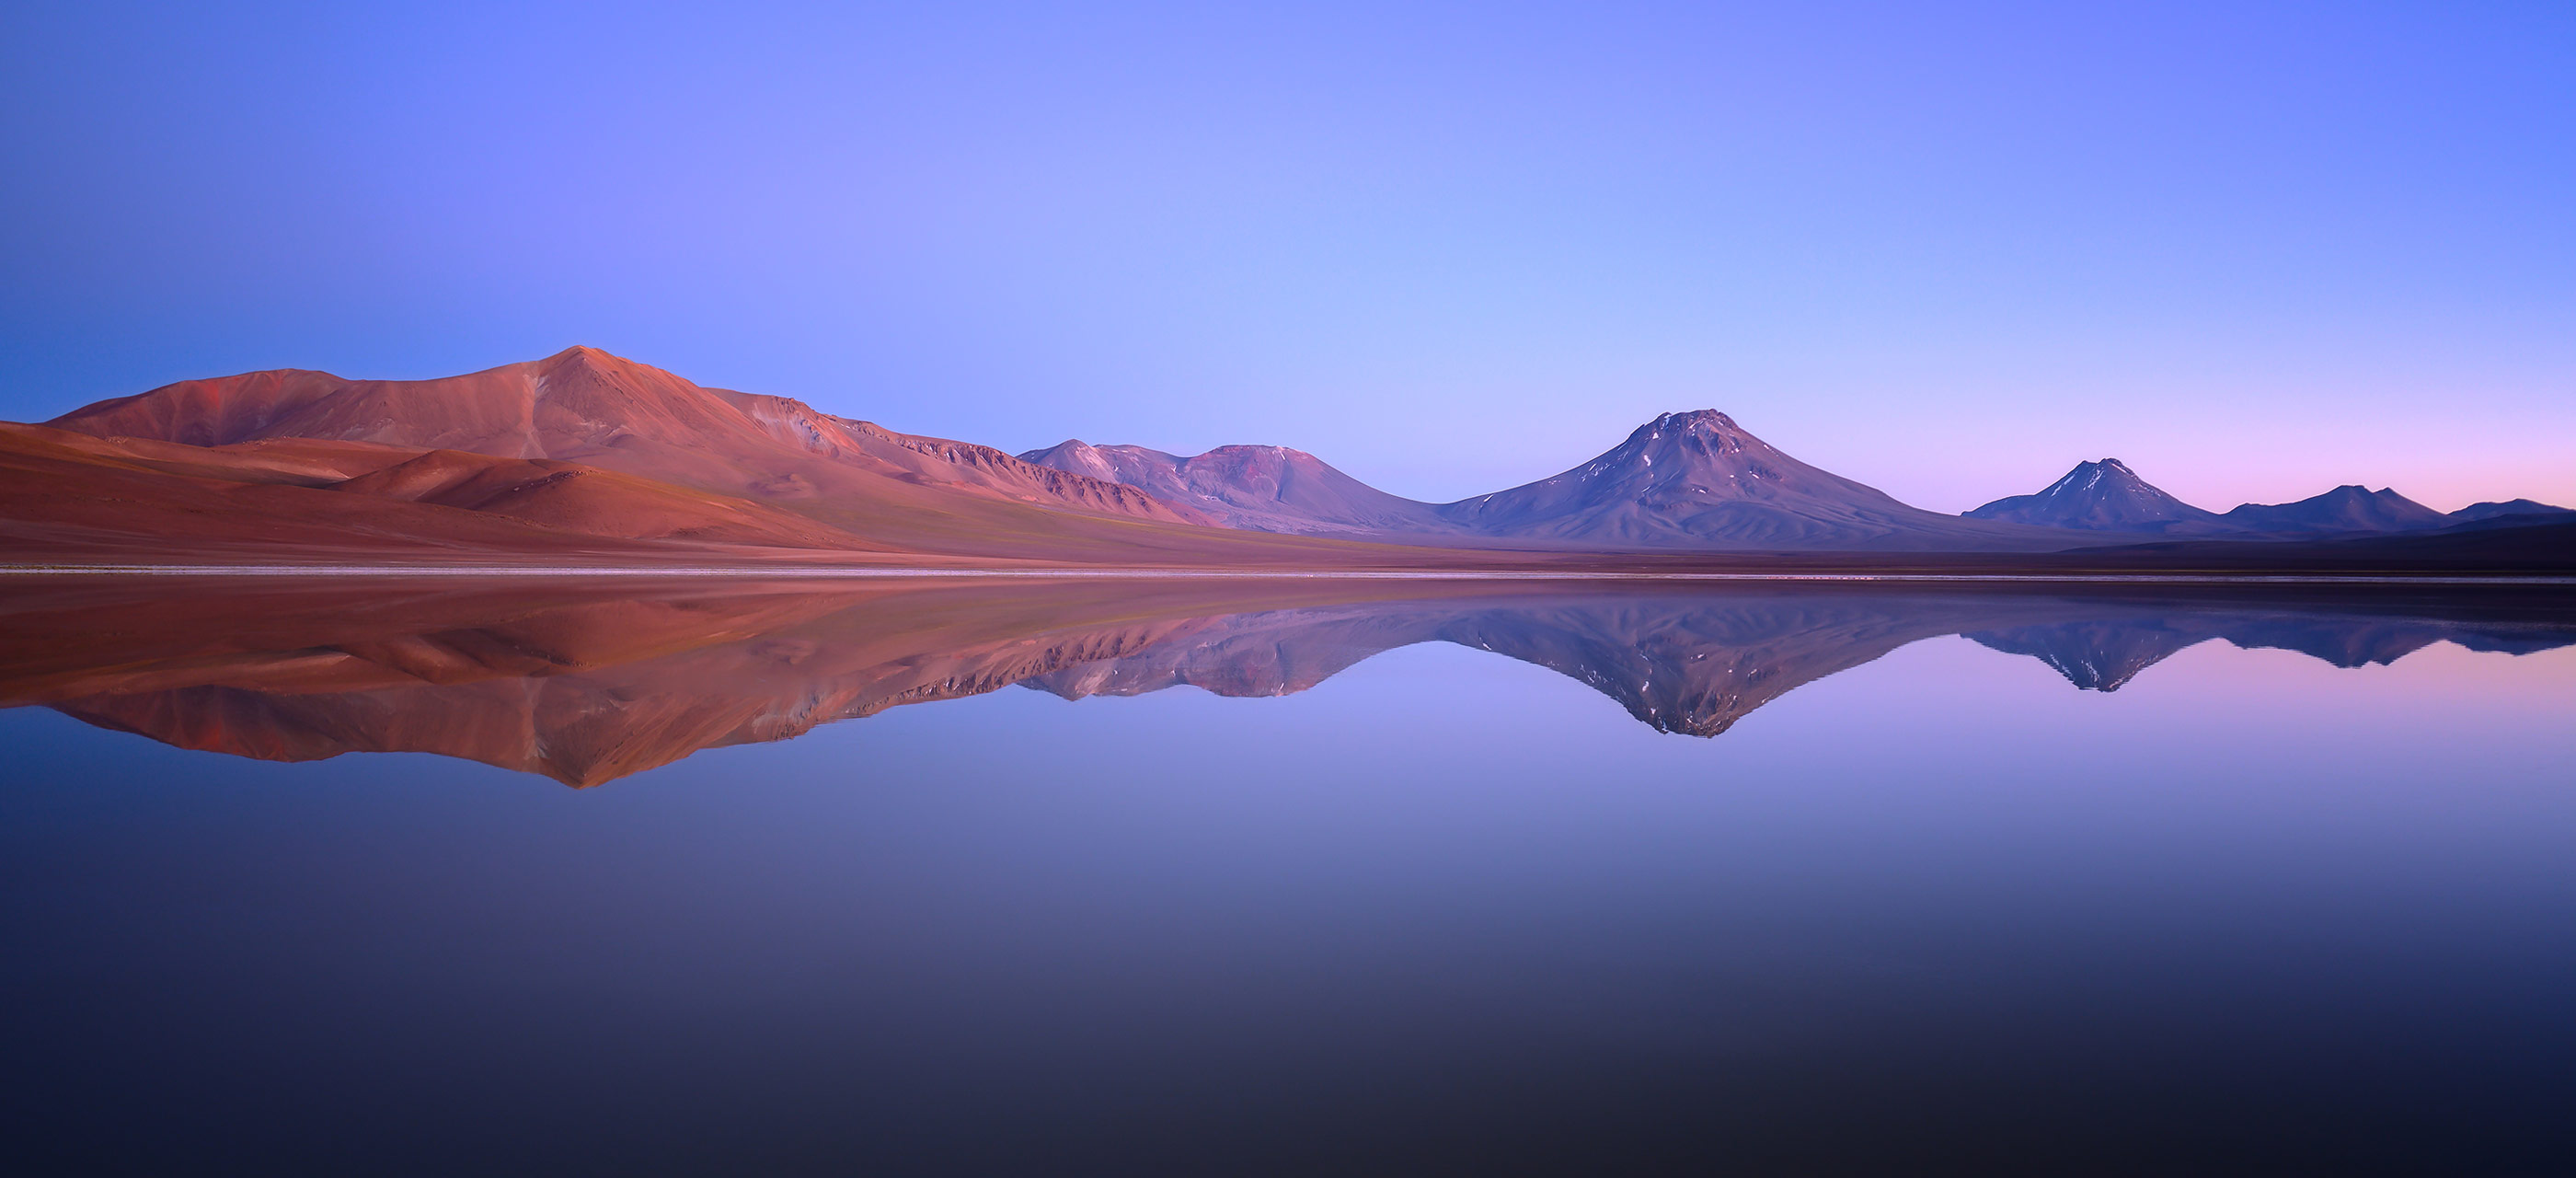 Landscape photo of hills and their reflection in water, taken with the NIKKOR Z 20mm f/1.8 S